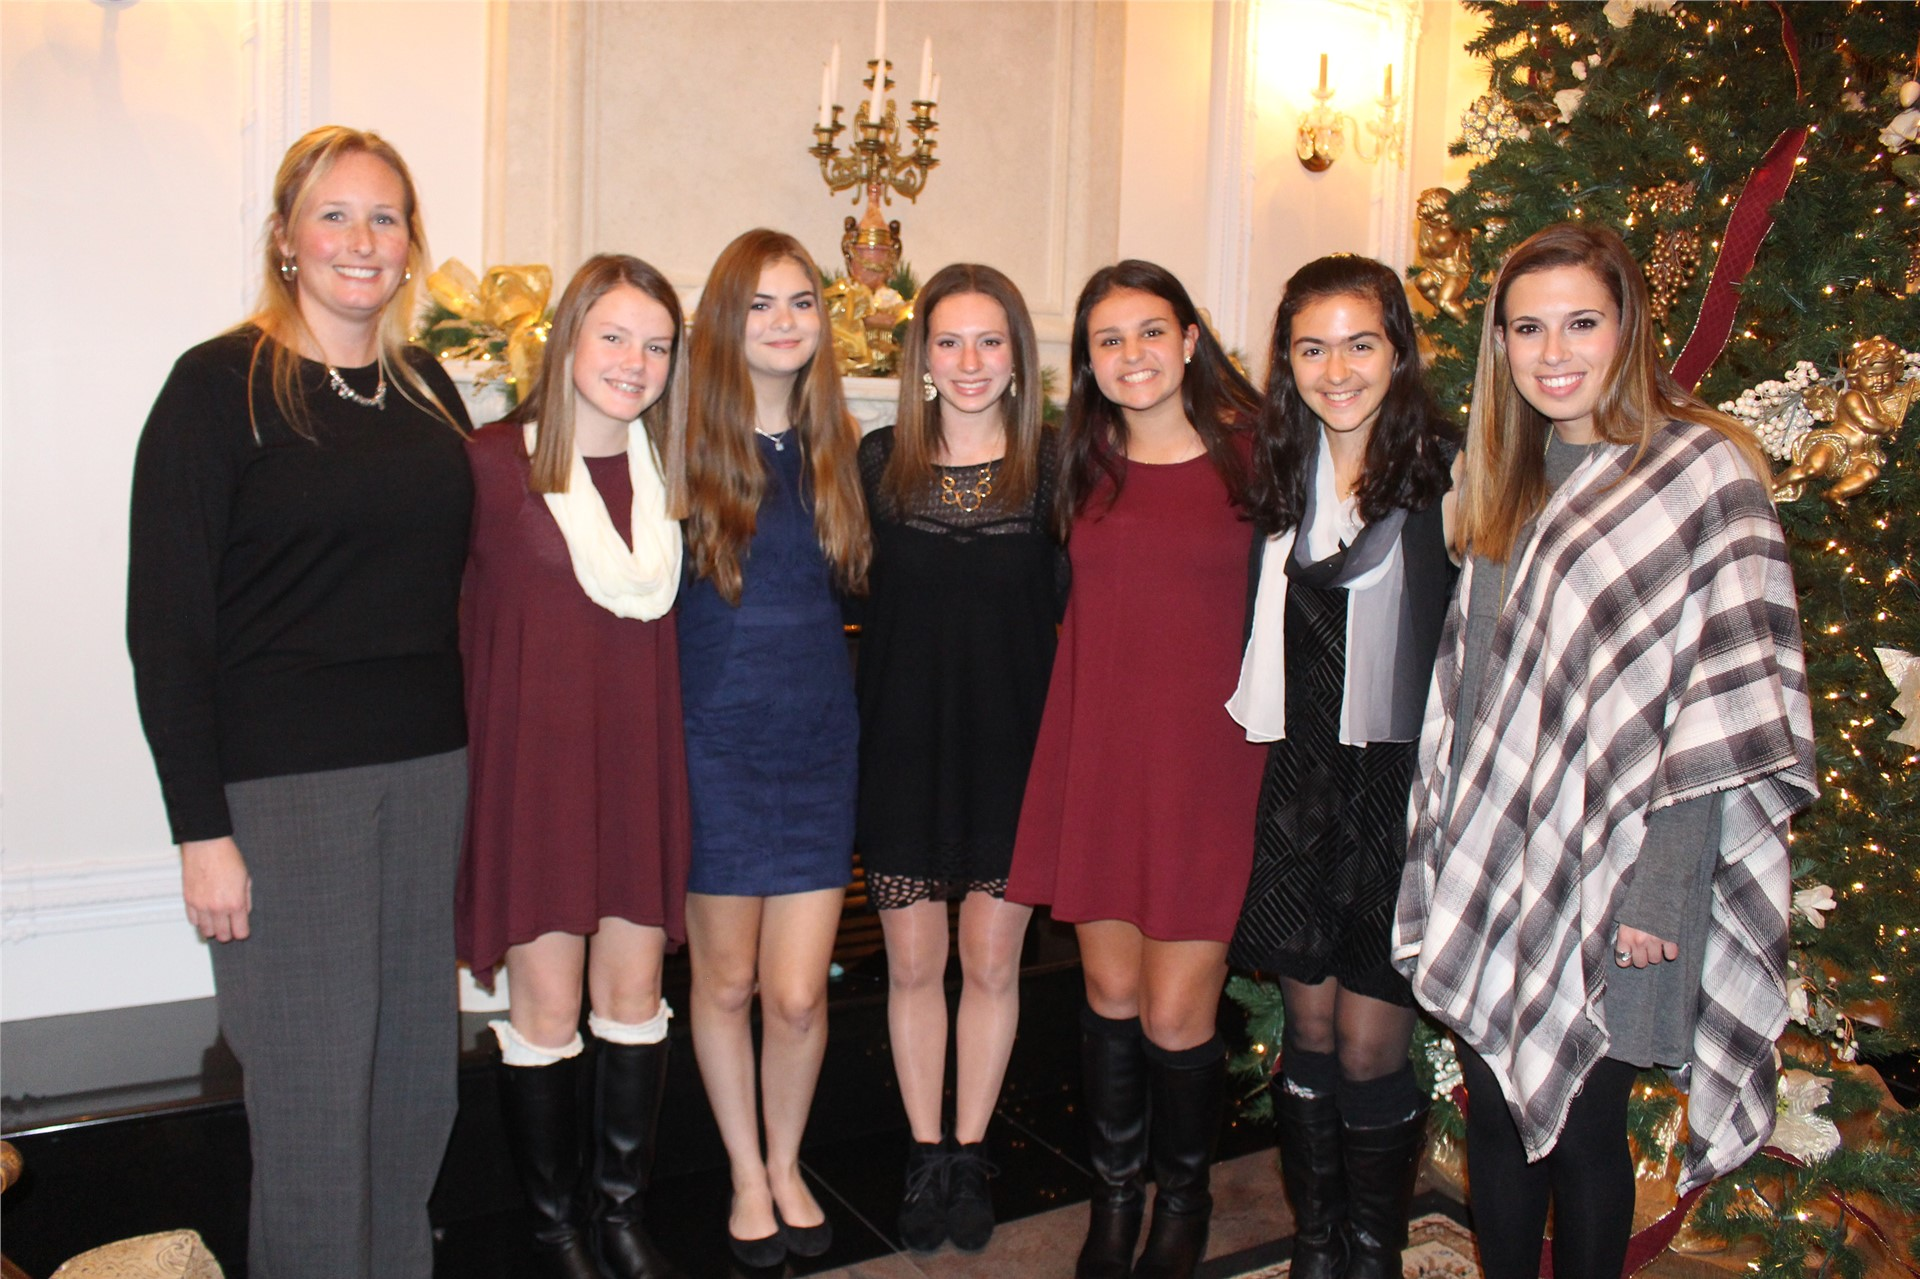 Field Hockey SCFHCA Awards Dinner